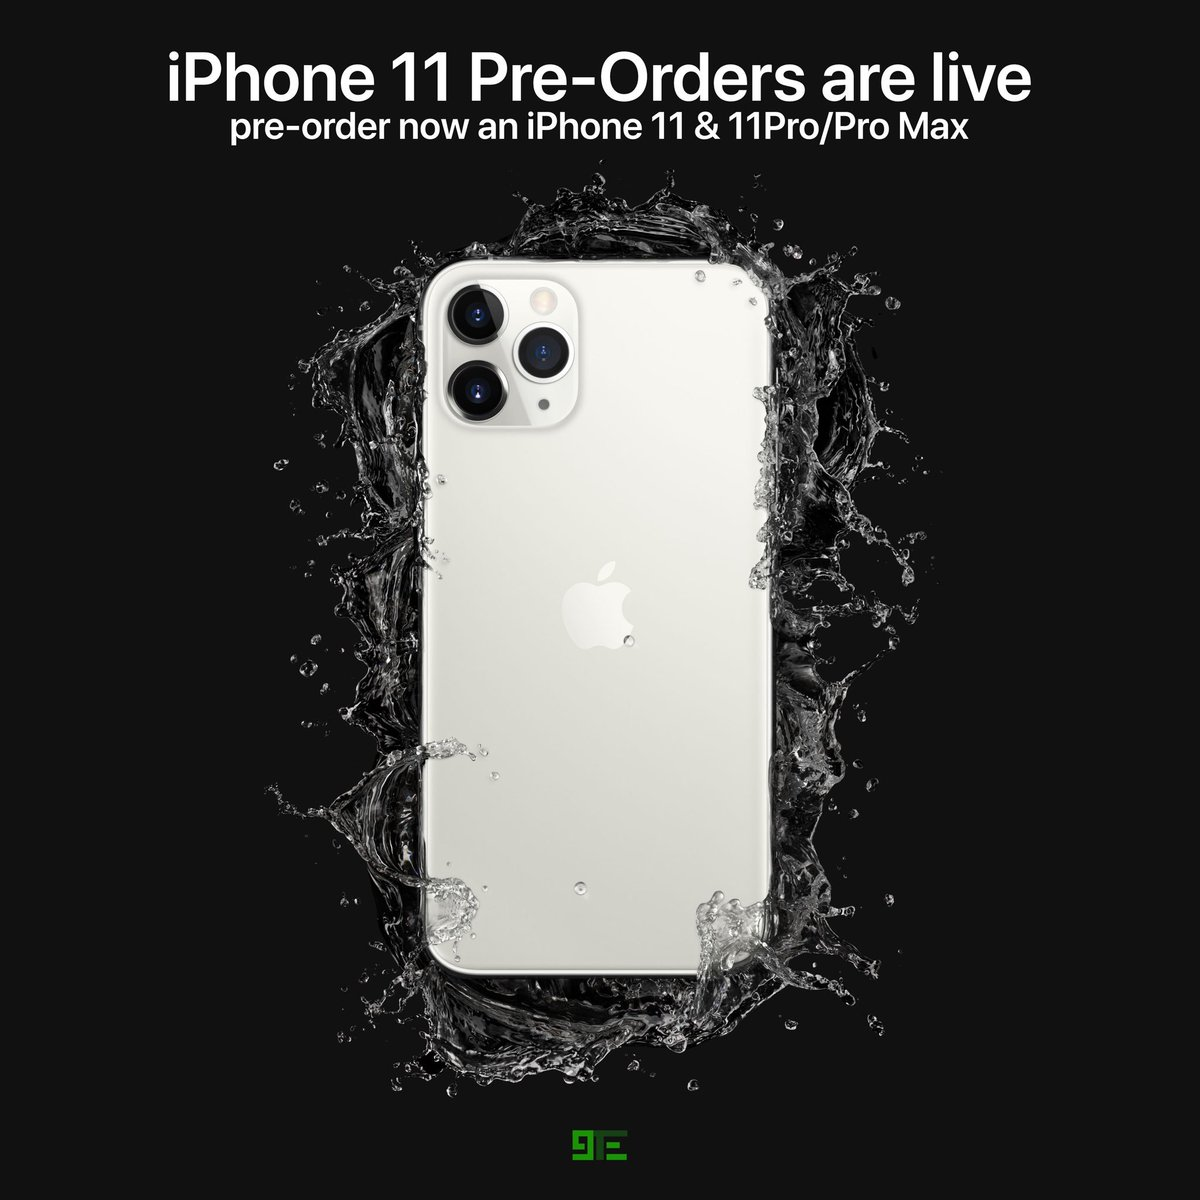 9techeleven On Twitter Pre Orders Of The New Iphone 11 11 Pro And 11 Pro Max Are Now Available Did You Pre Order Yours Appleevent Iphonepro Iphone11 Iphonepromax Iphonexi Iphone11pro Iphone11promax Apple Wallpaper Wallpapers